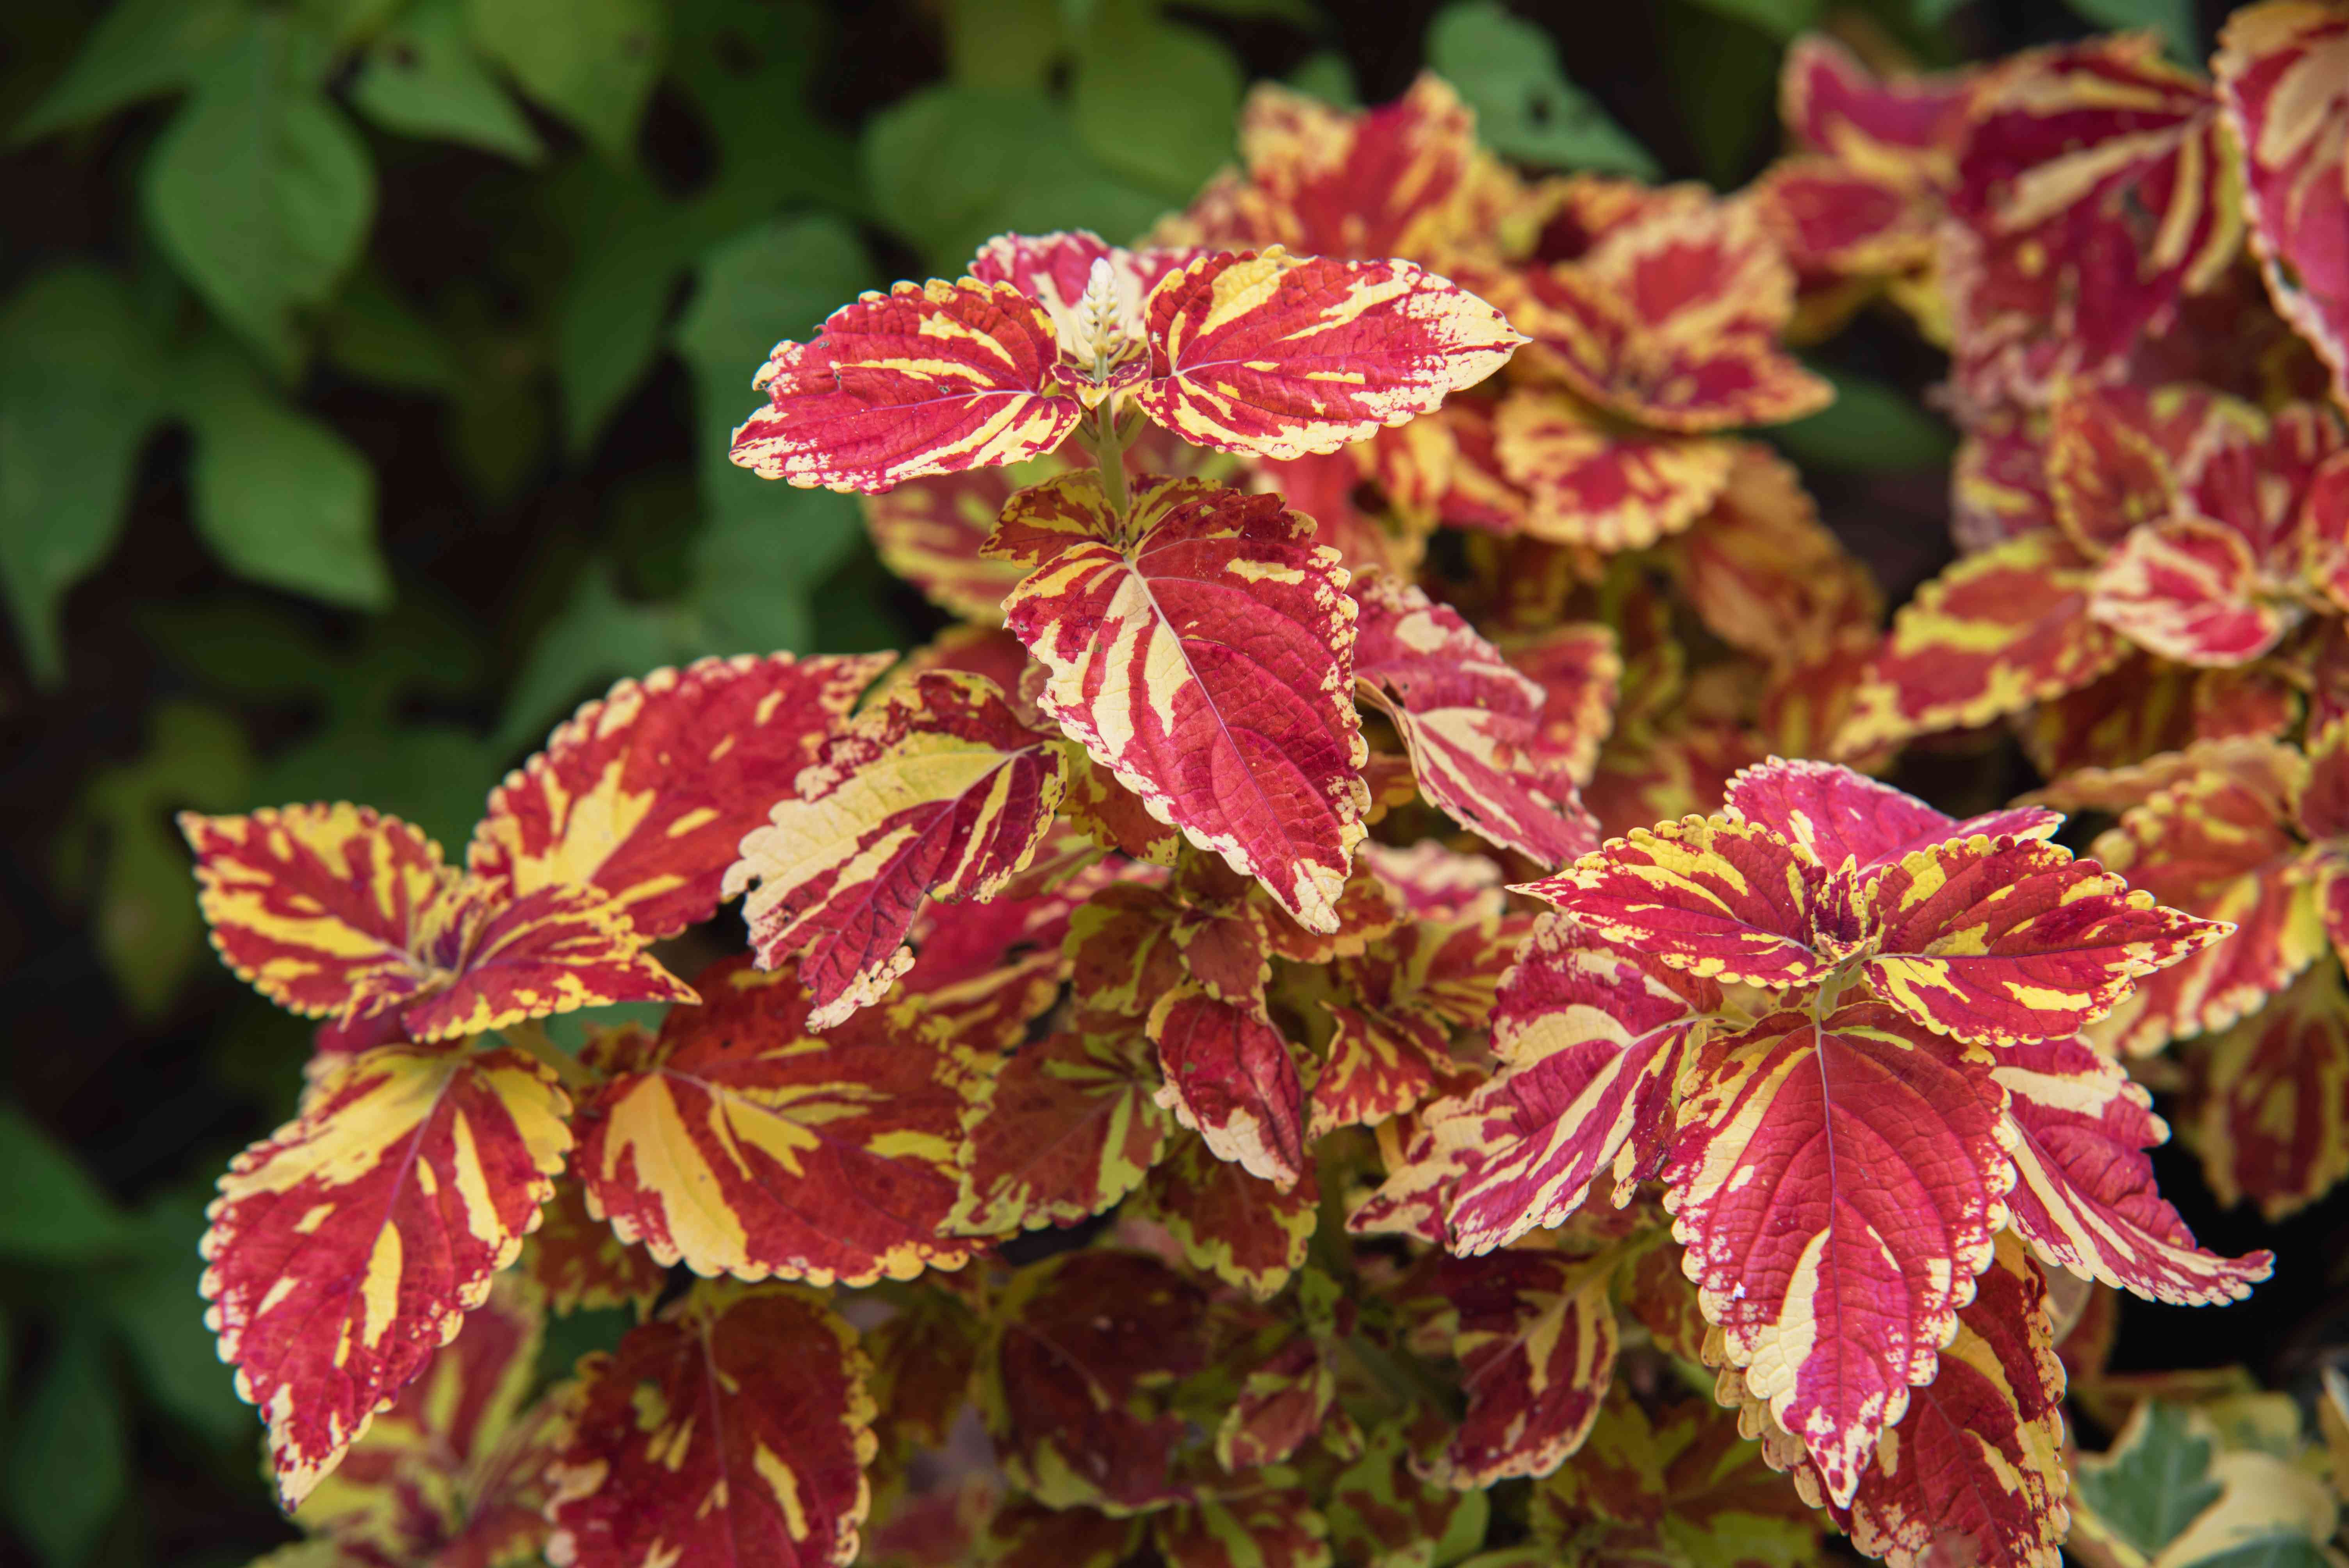 Coleus freckles with red and yellow flowers closeup